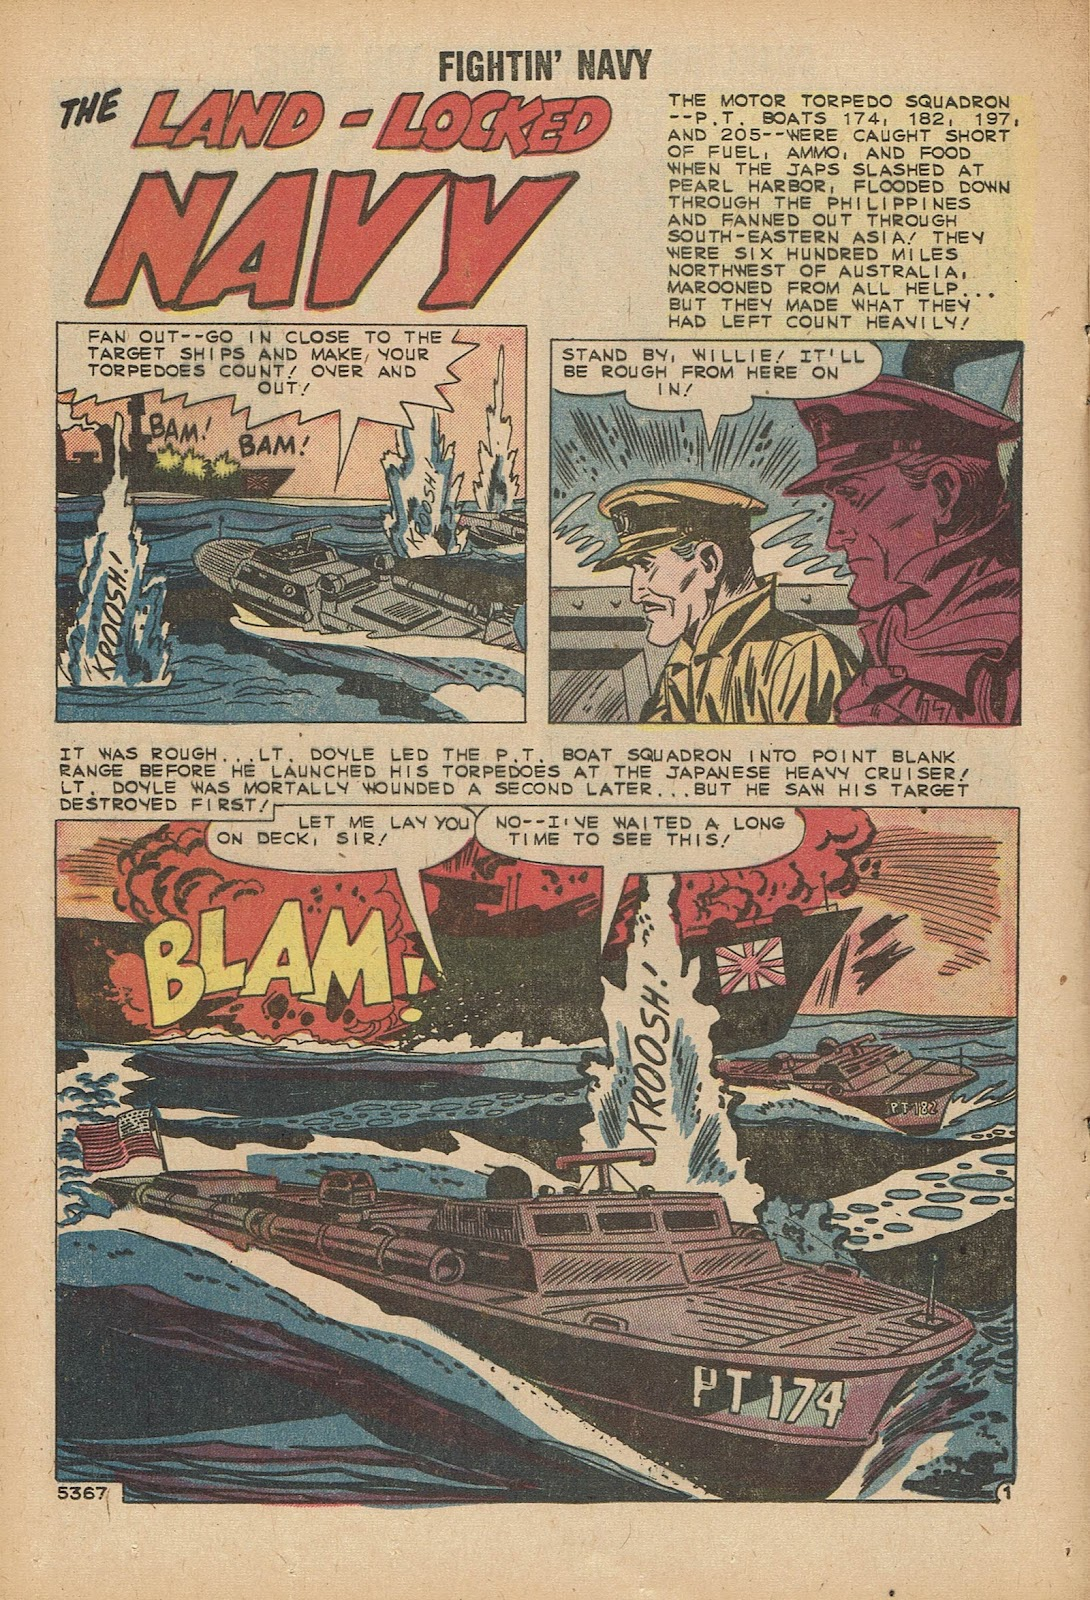 Read online Fightin' Navy comic -  Issue #92 - 12